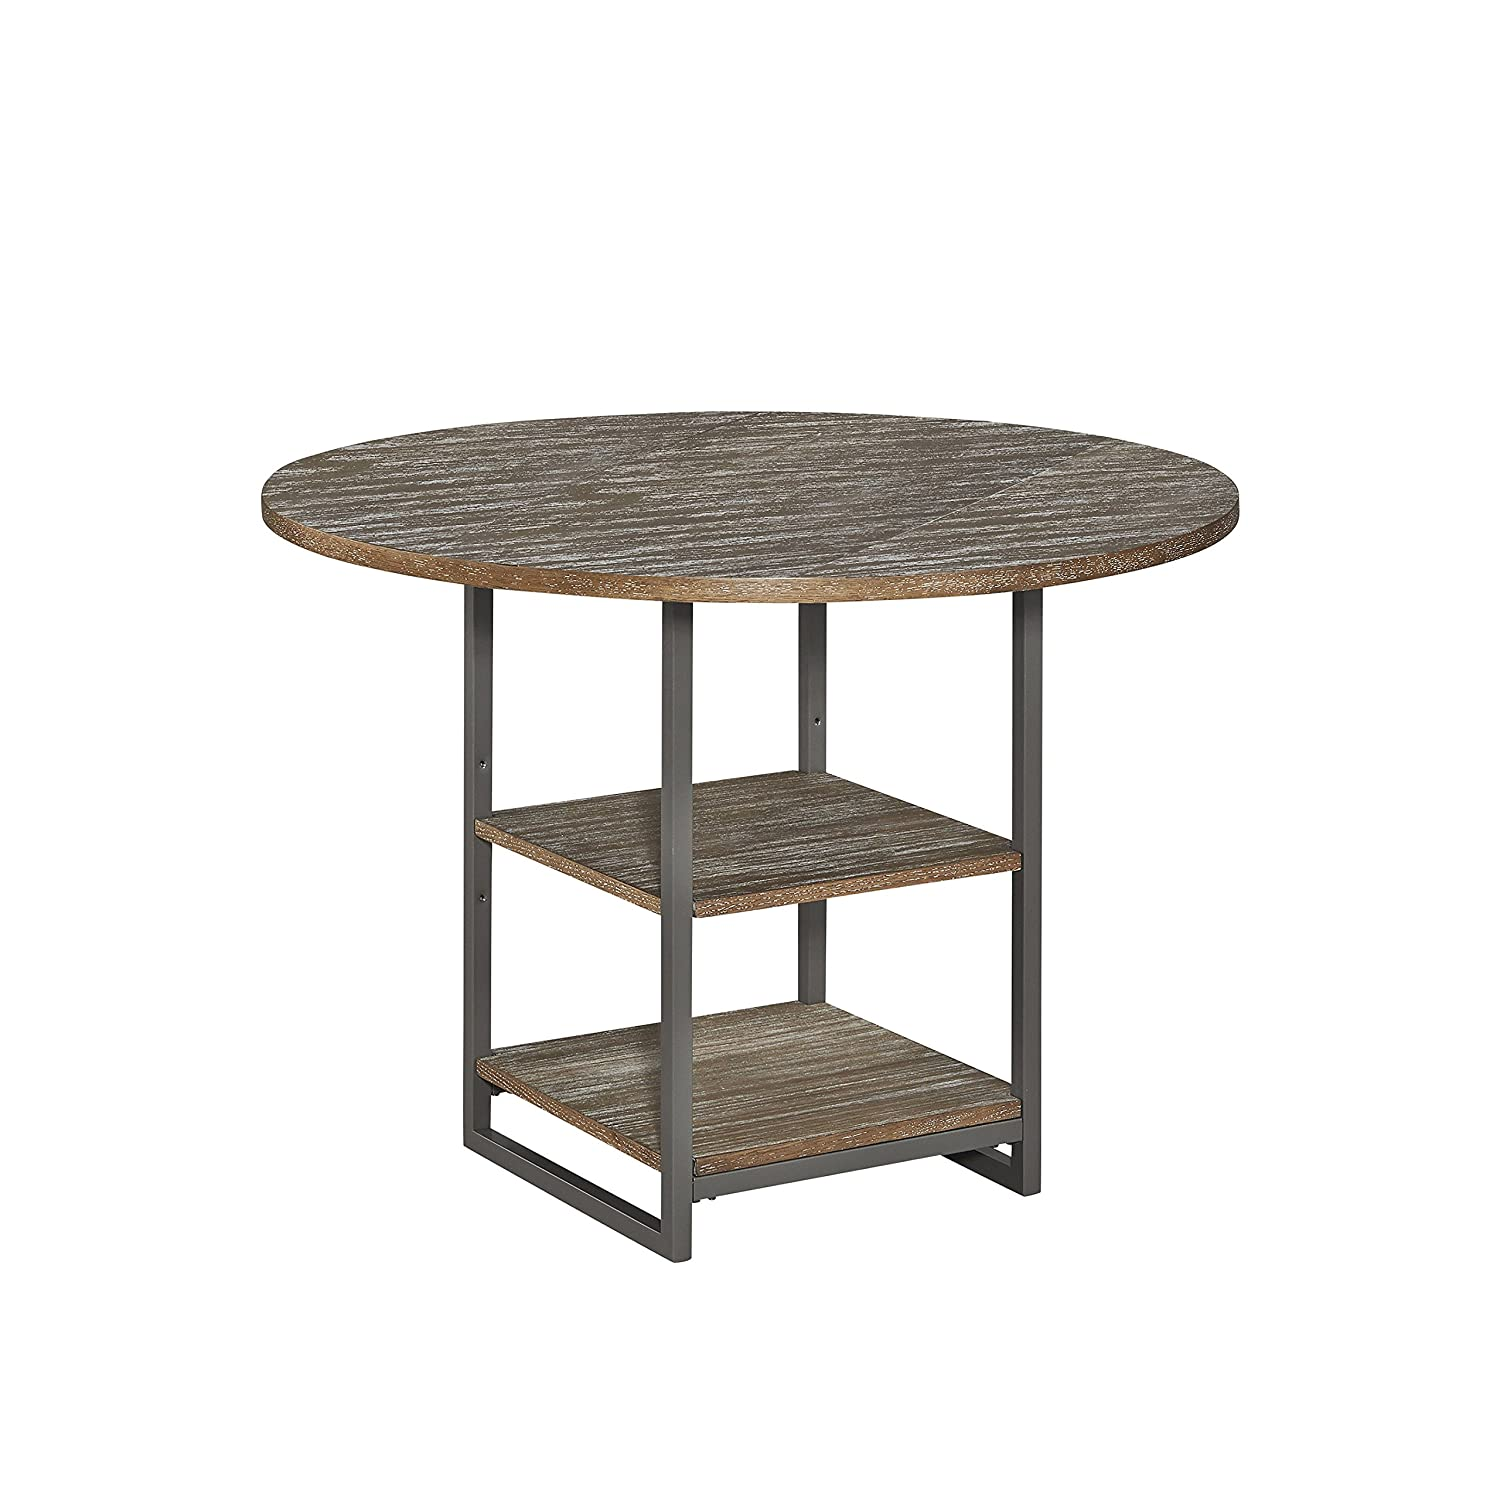 """Home Styles Barnside Metro 42"""" Round Dining Table, W-42"""", D-42"""" H-30"""", Driftwood"""